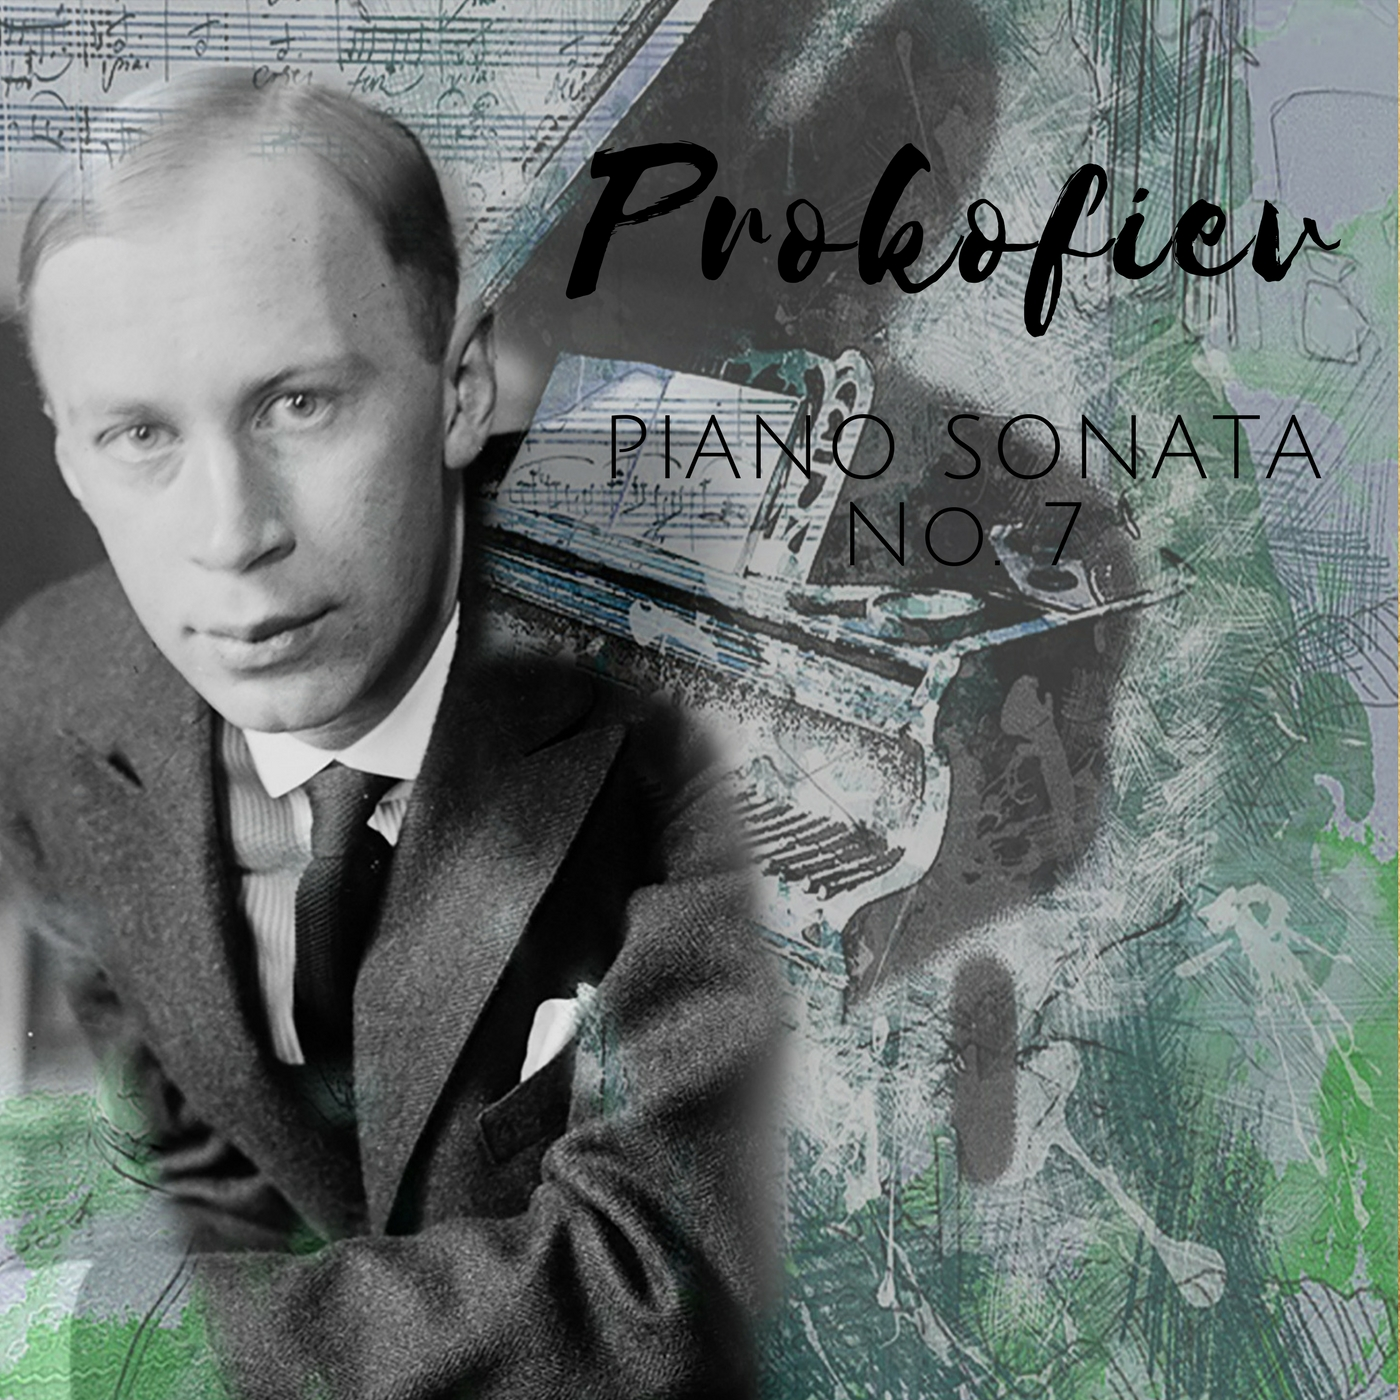 Prokofiev: Piano Sonata No. 7 in B-Flat Major, Op. 83